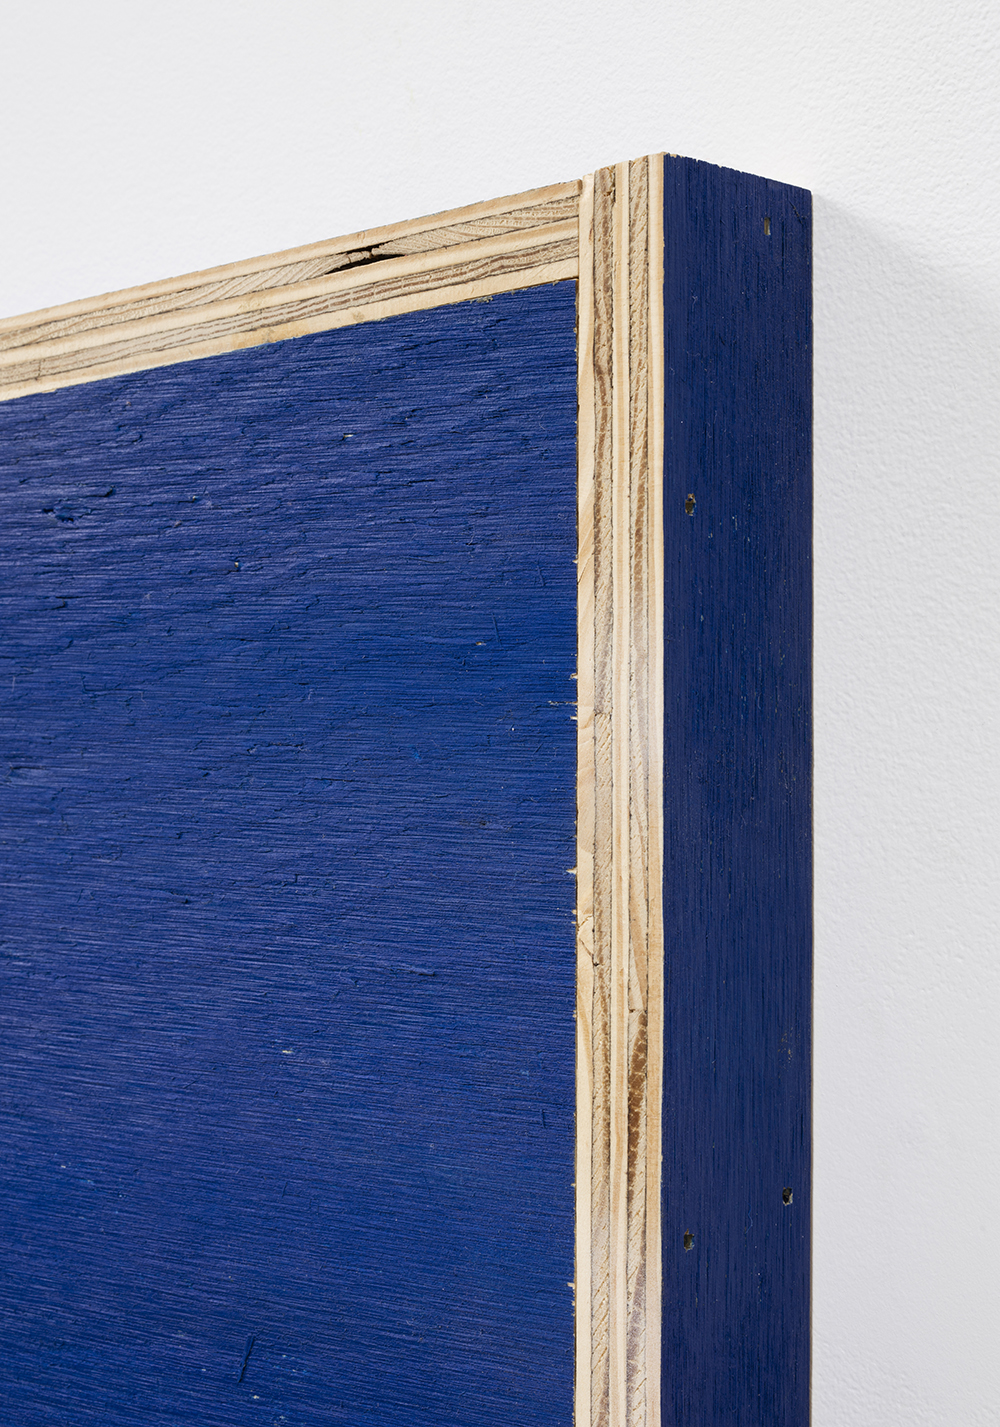 G.T. Pellizzi. <em>Transitional Geometry in Blue</em>, 2017. Eggshell acrylic on plywood, 25 3/4 x 30 1/4 x 5 inches. Detail